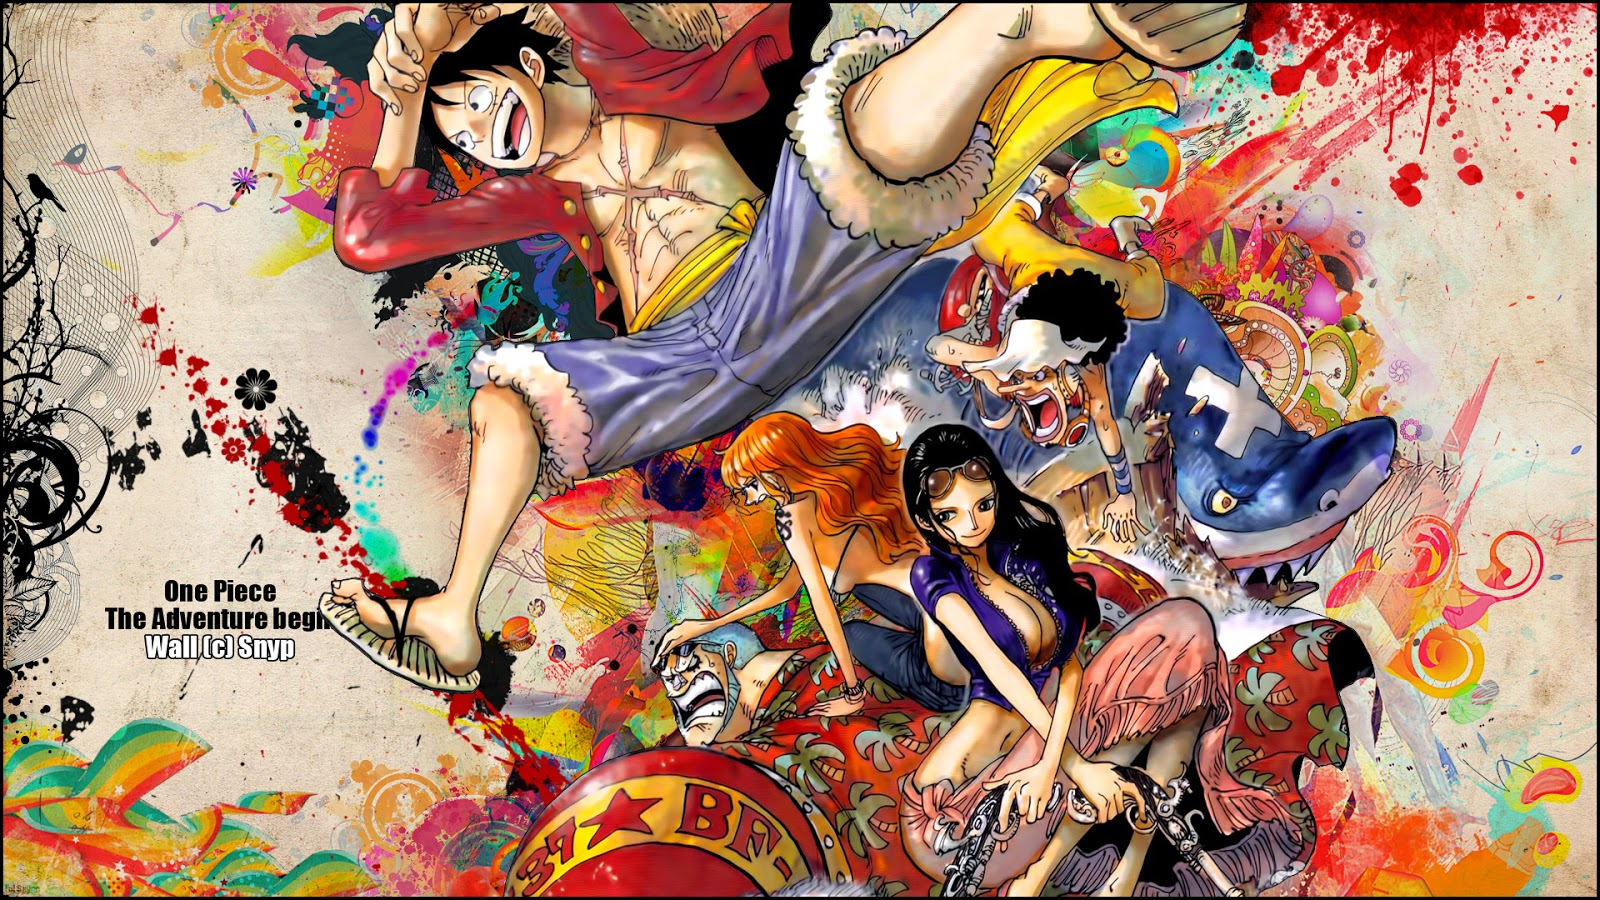 One Piece wallpapers Free download HD Quality